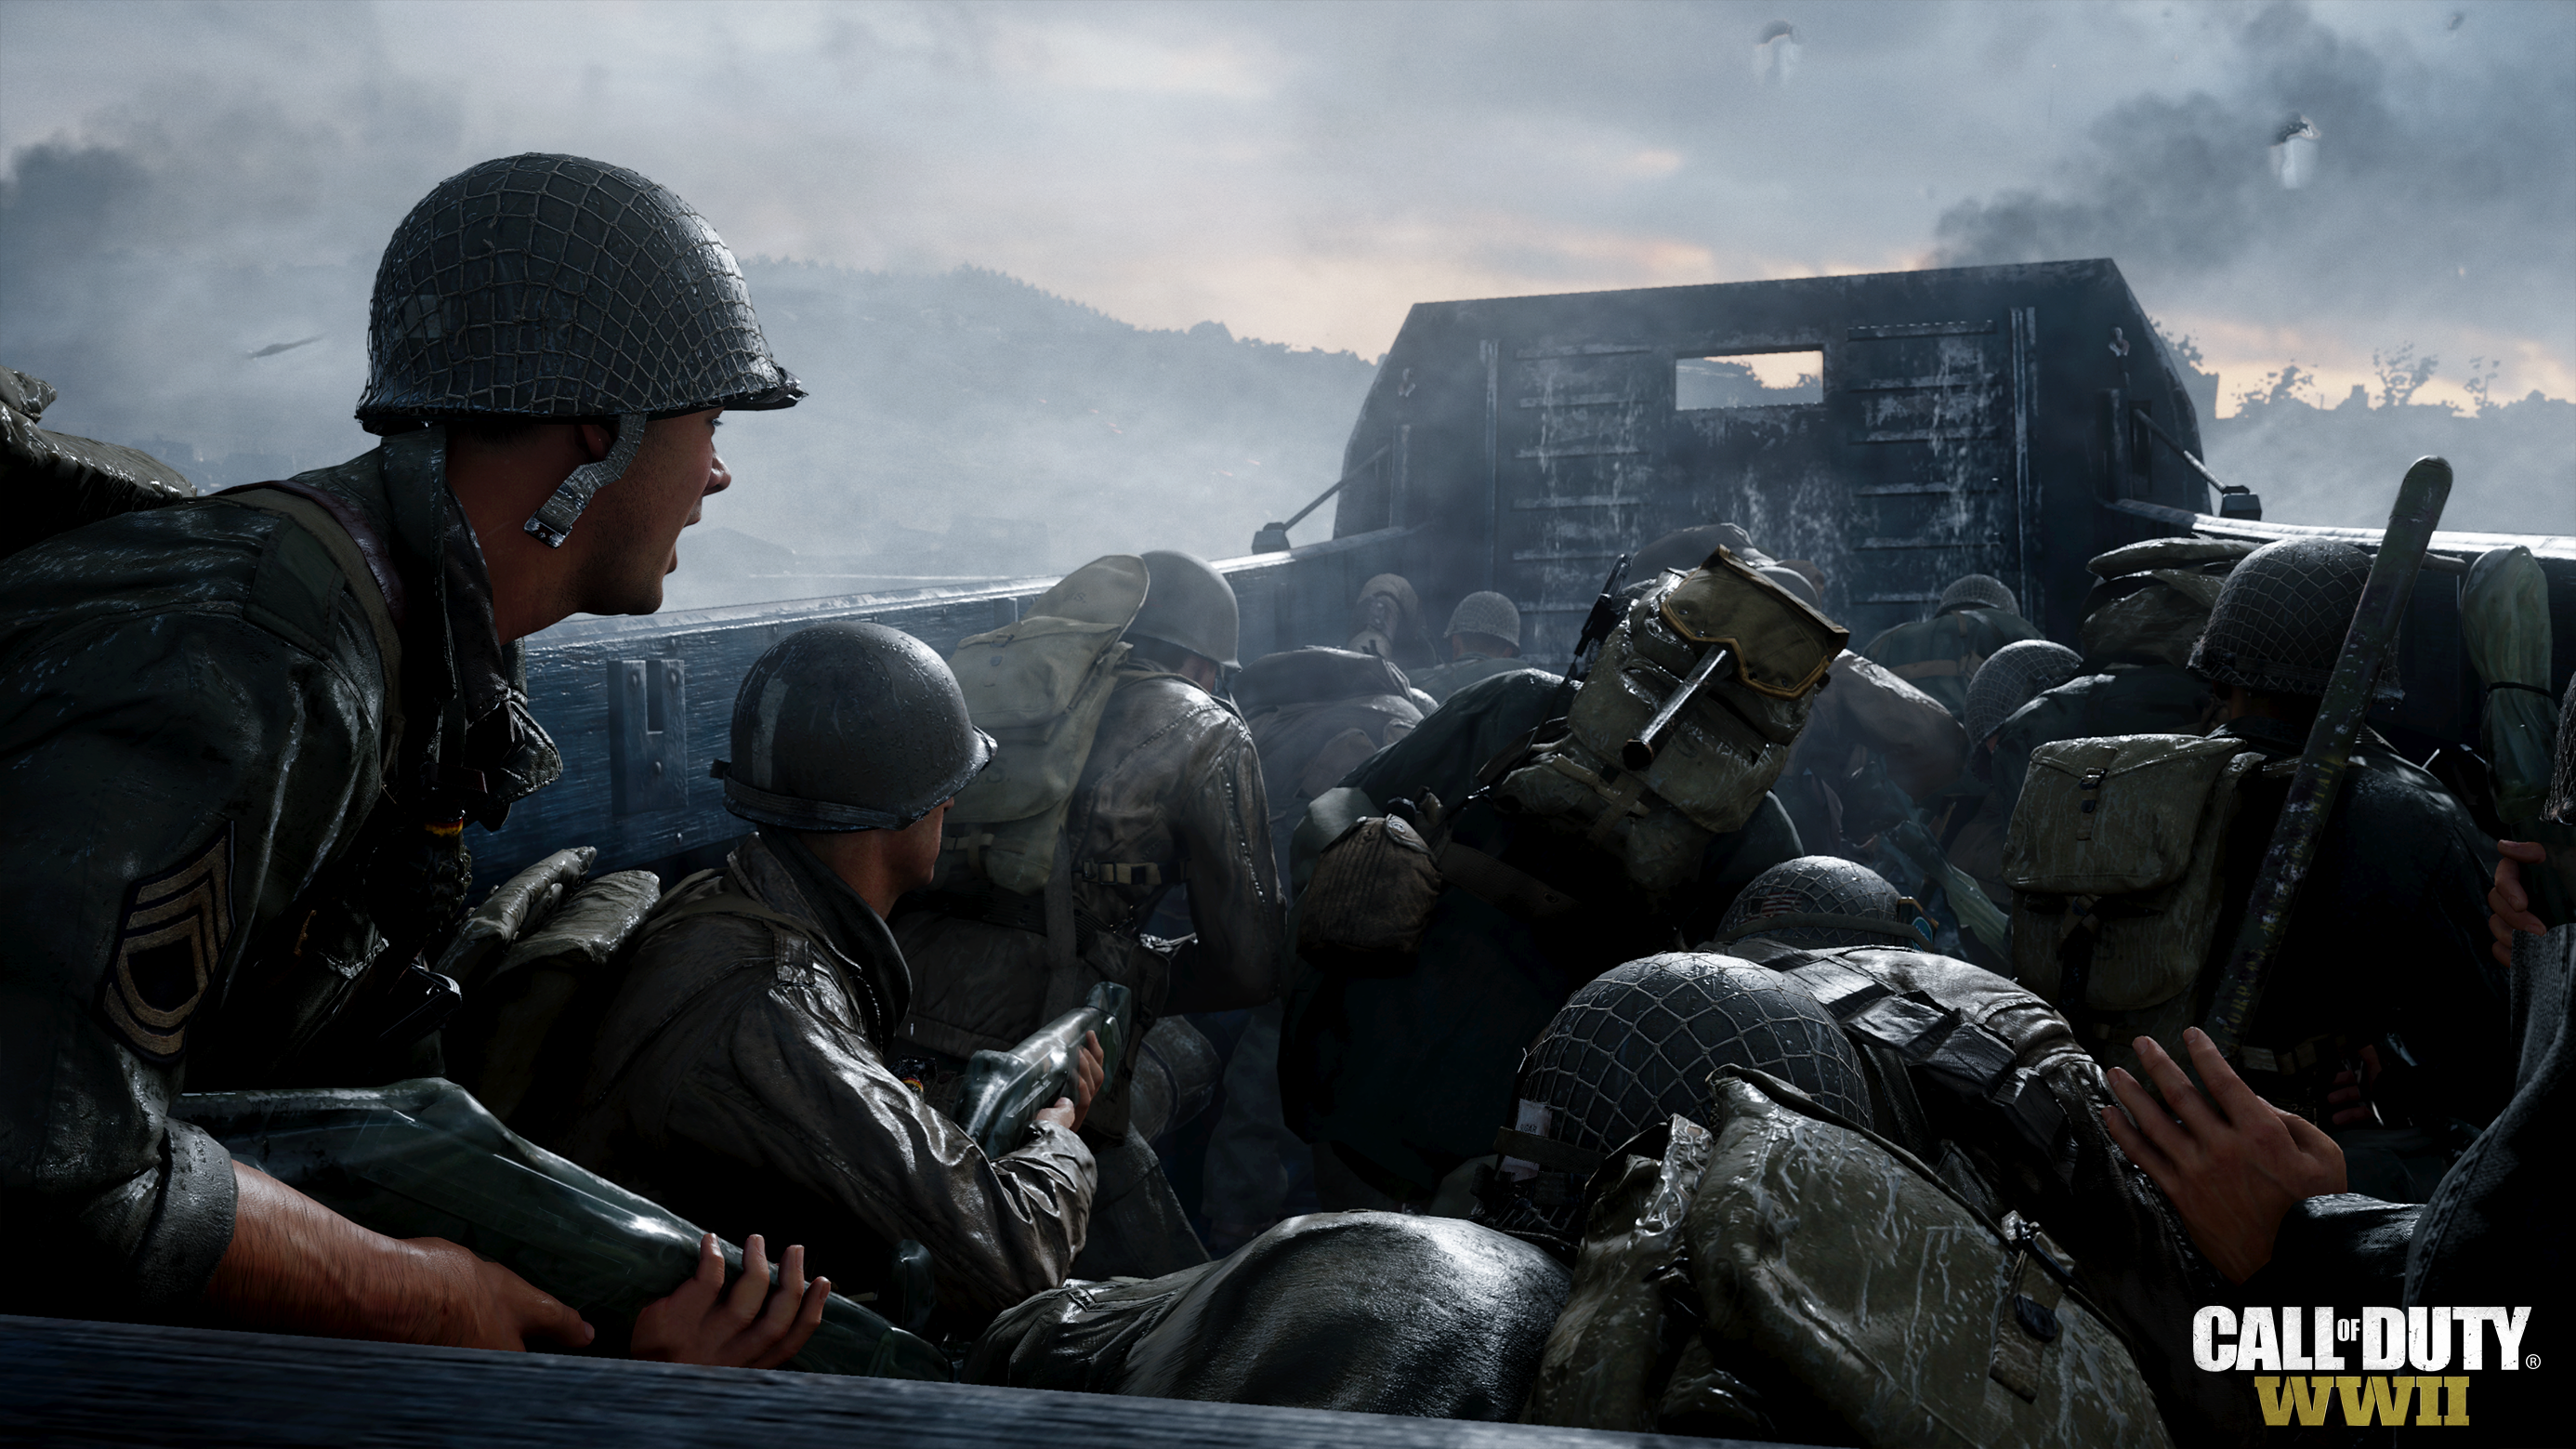 Wallpaper Source The Point Taken Podcast Call Of Duty World War II Review